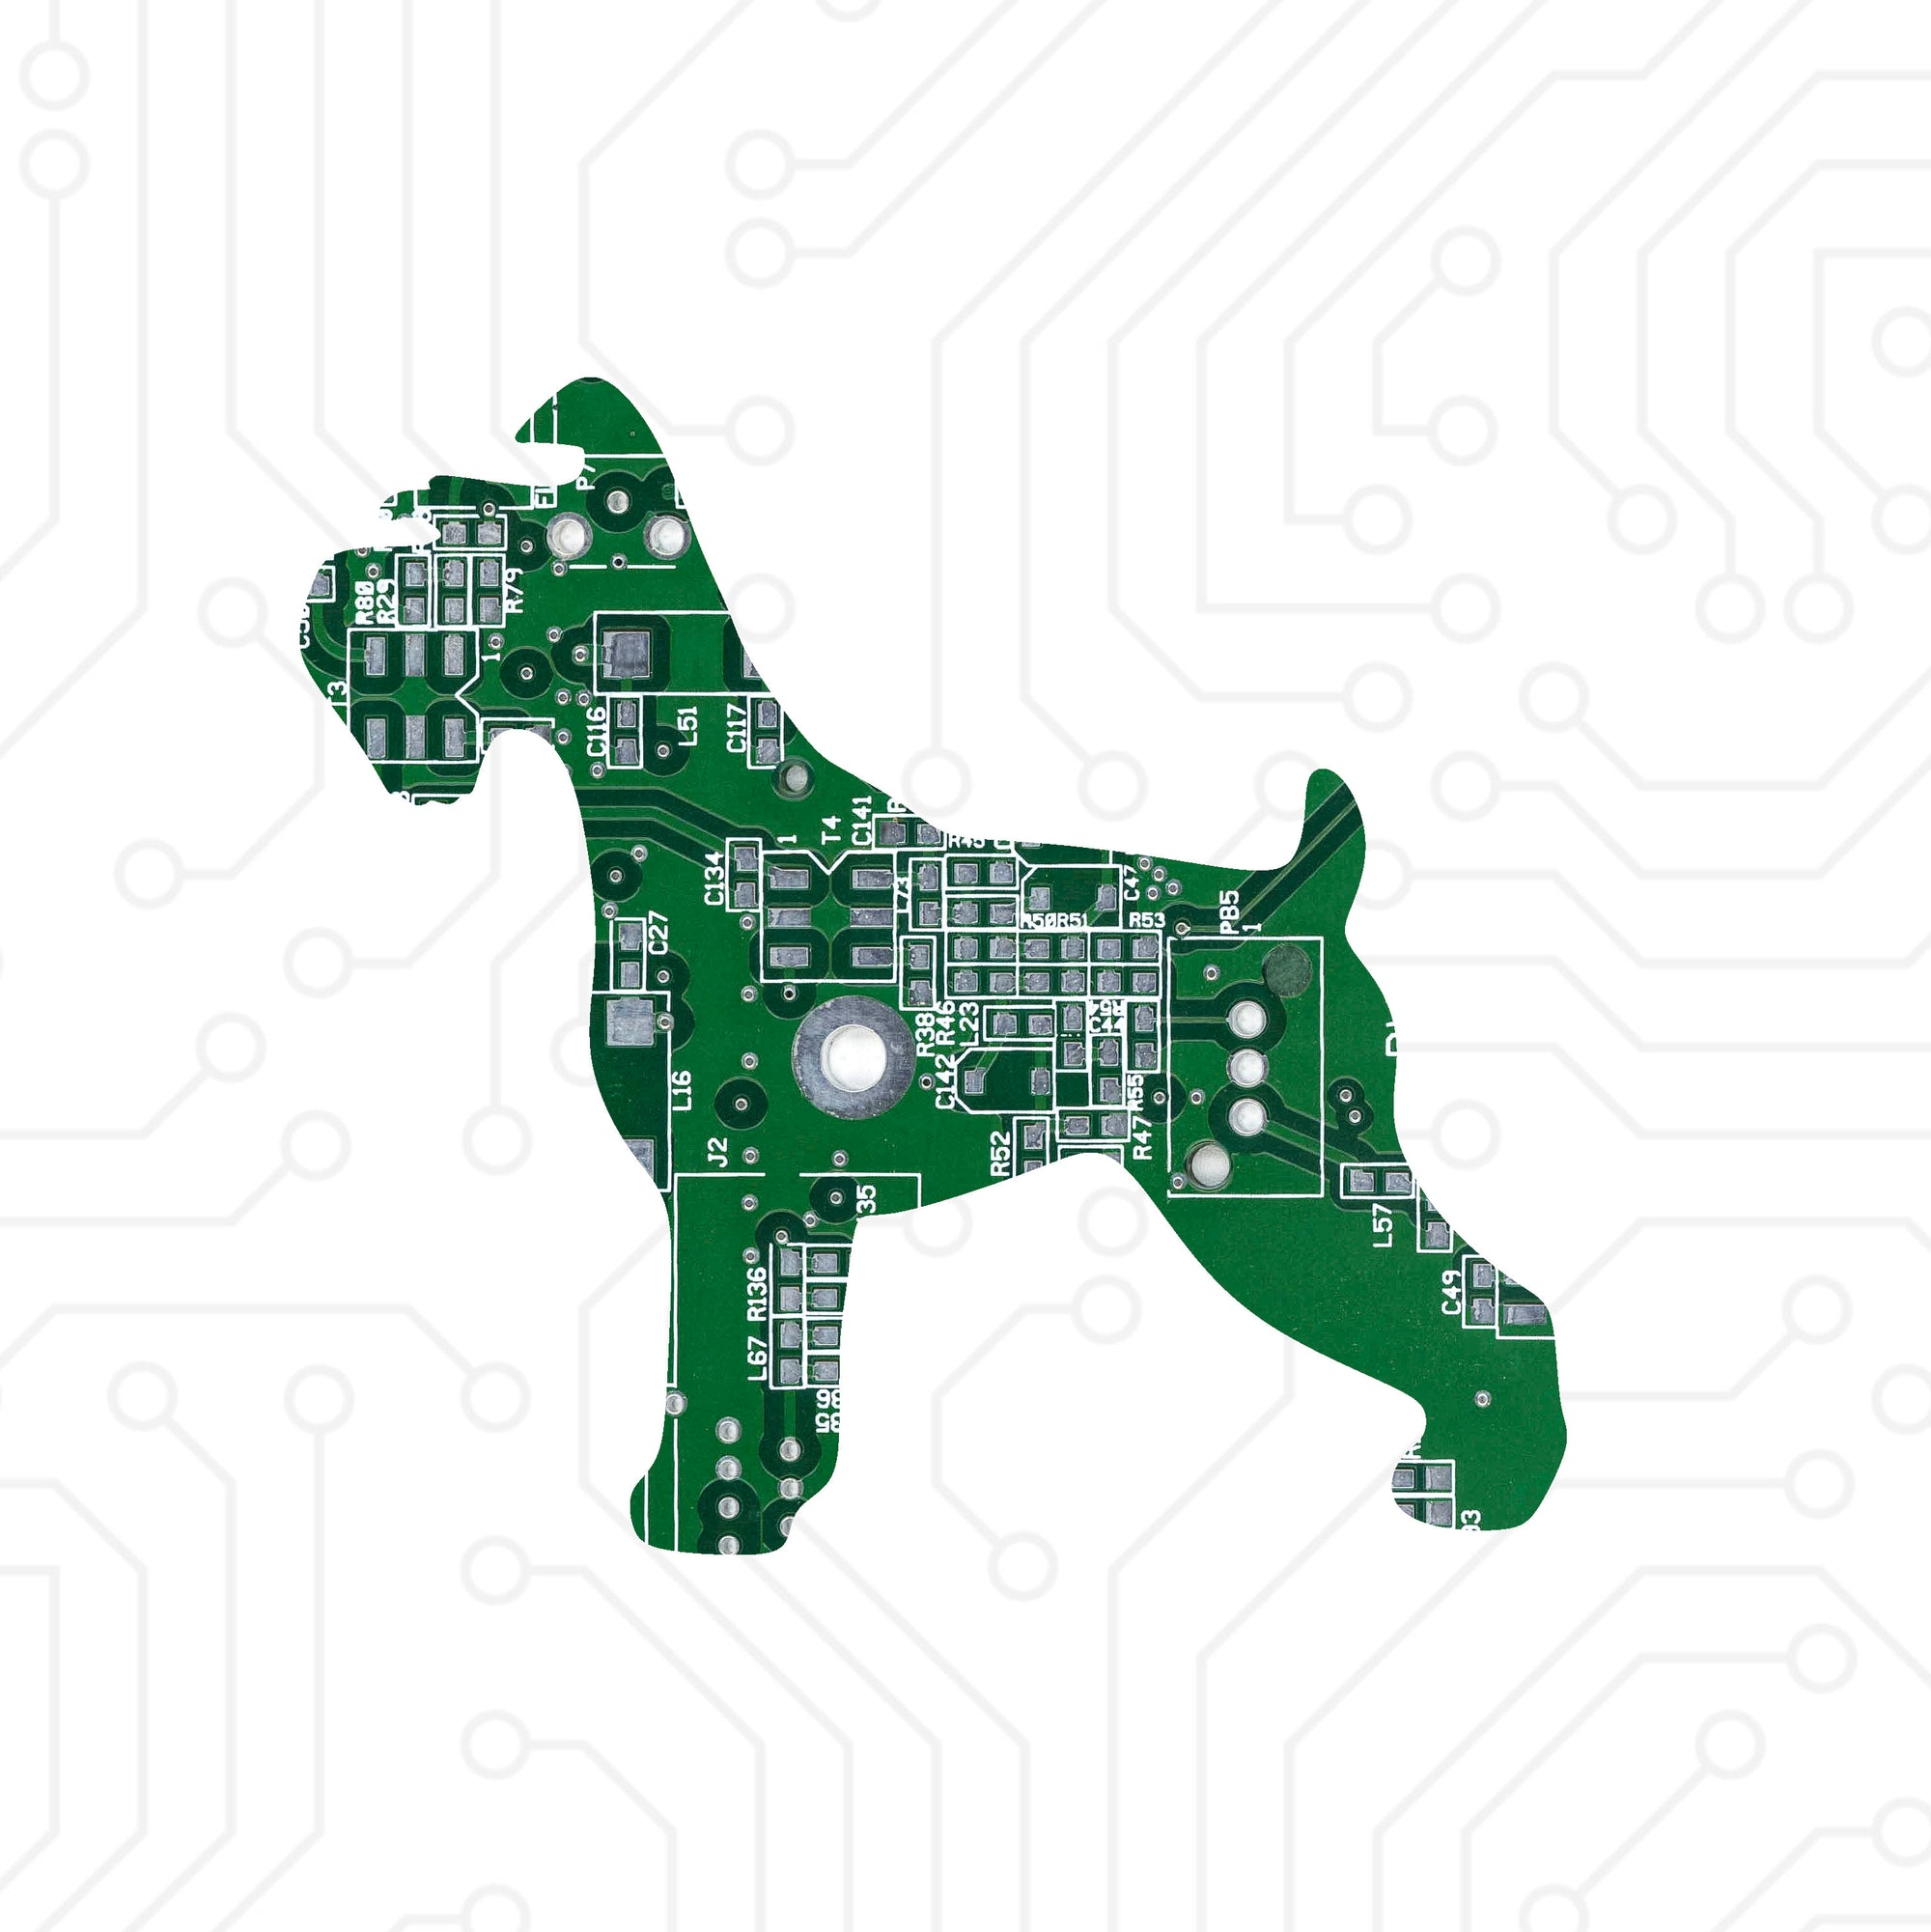 Circuit Board Schnauzer - TechWears Ltd